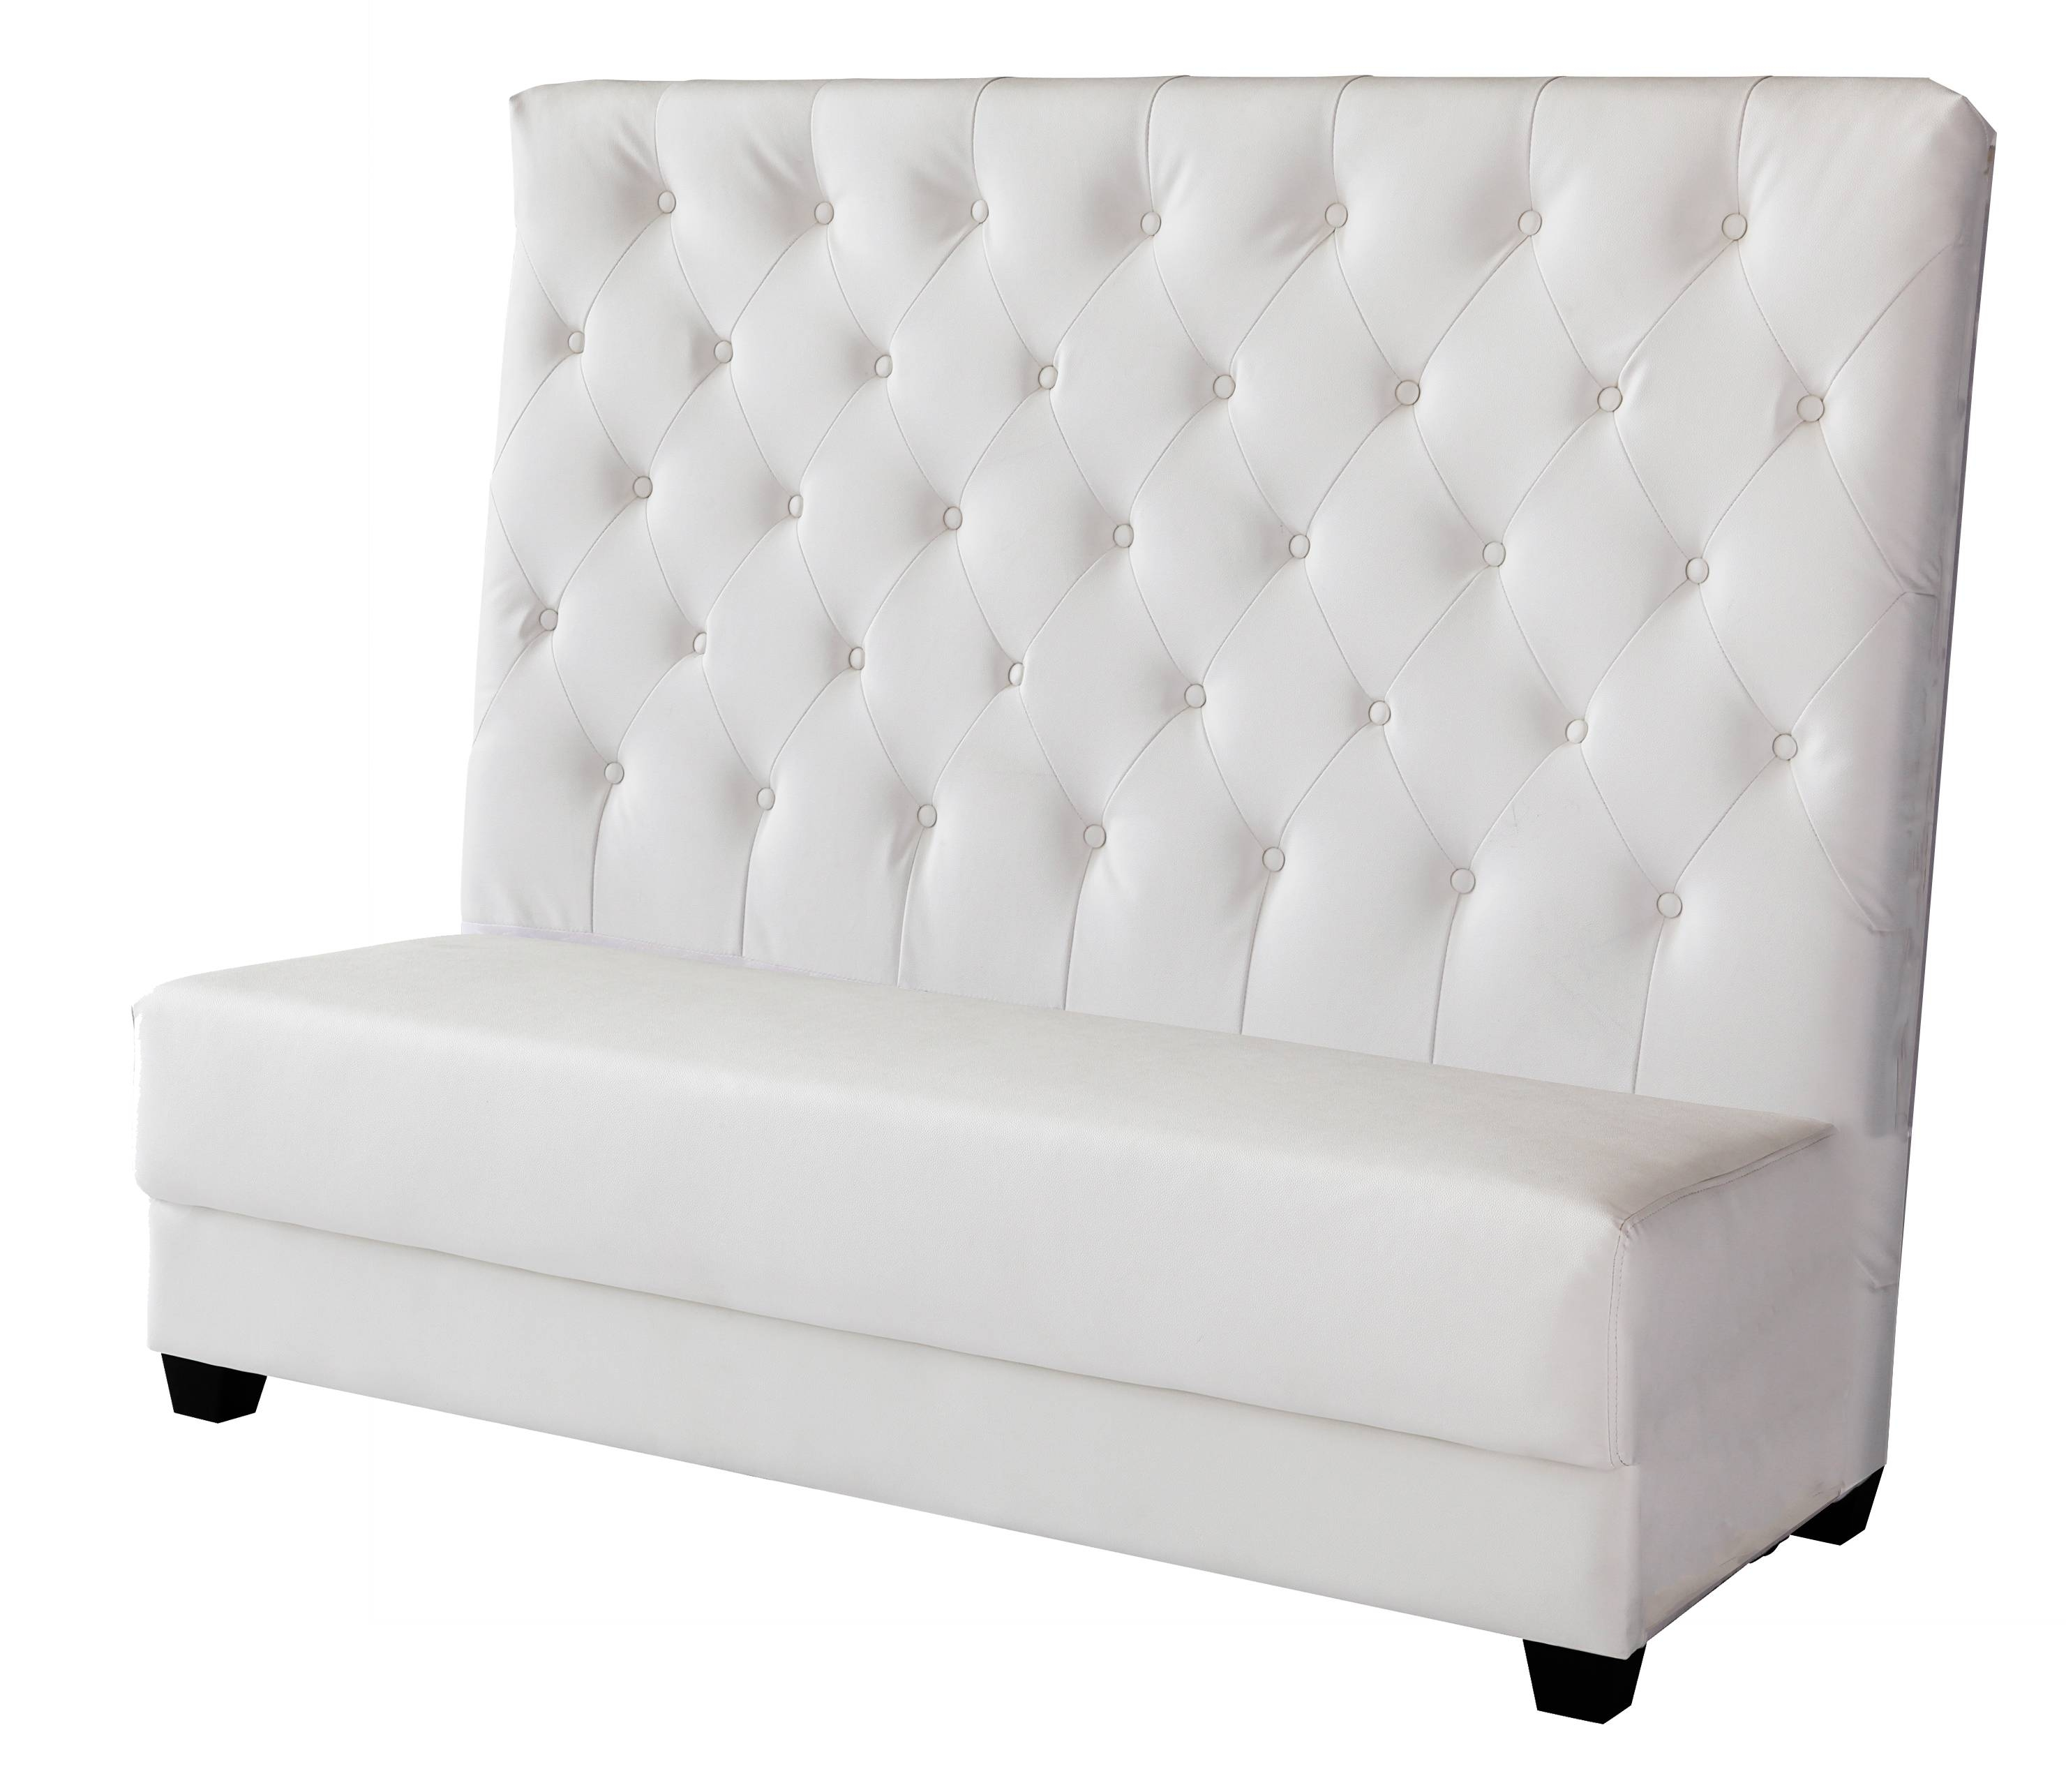 Furniture: Banquette Bench | Banquette | Round Banquette Seating intended for Banquette Sofas (Image 12 of 15)